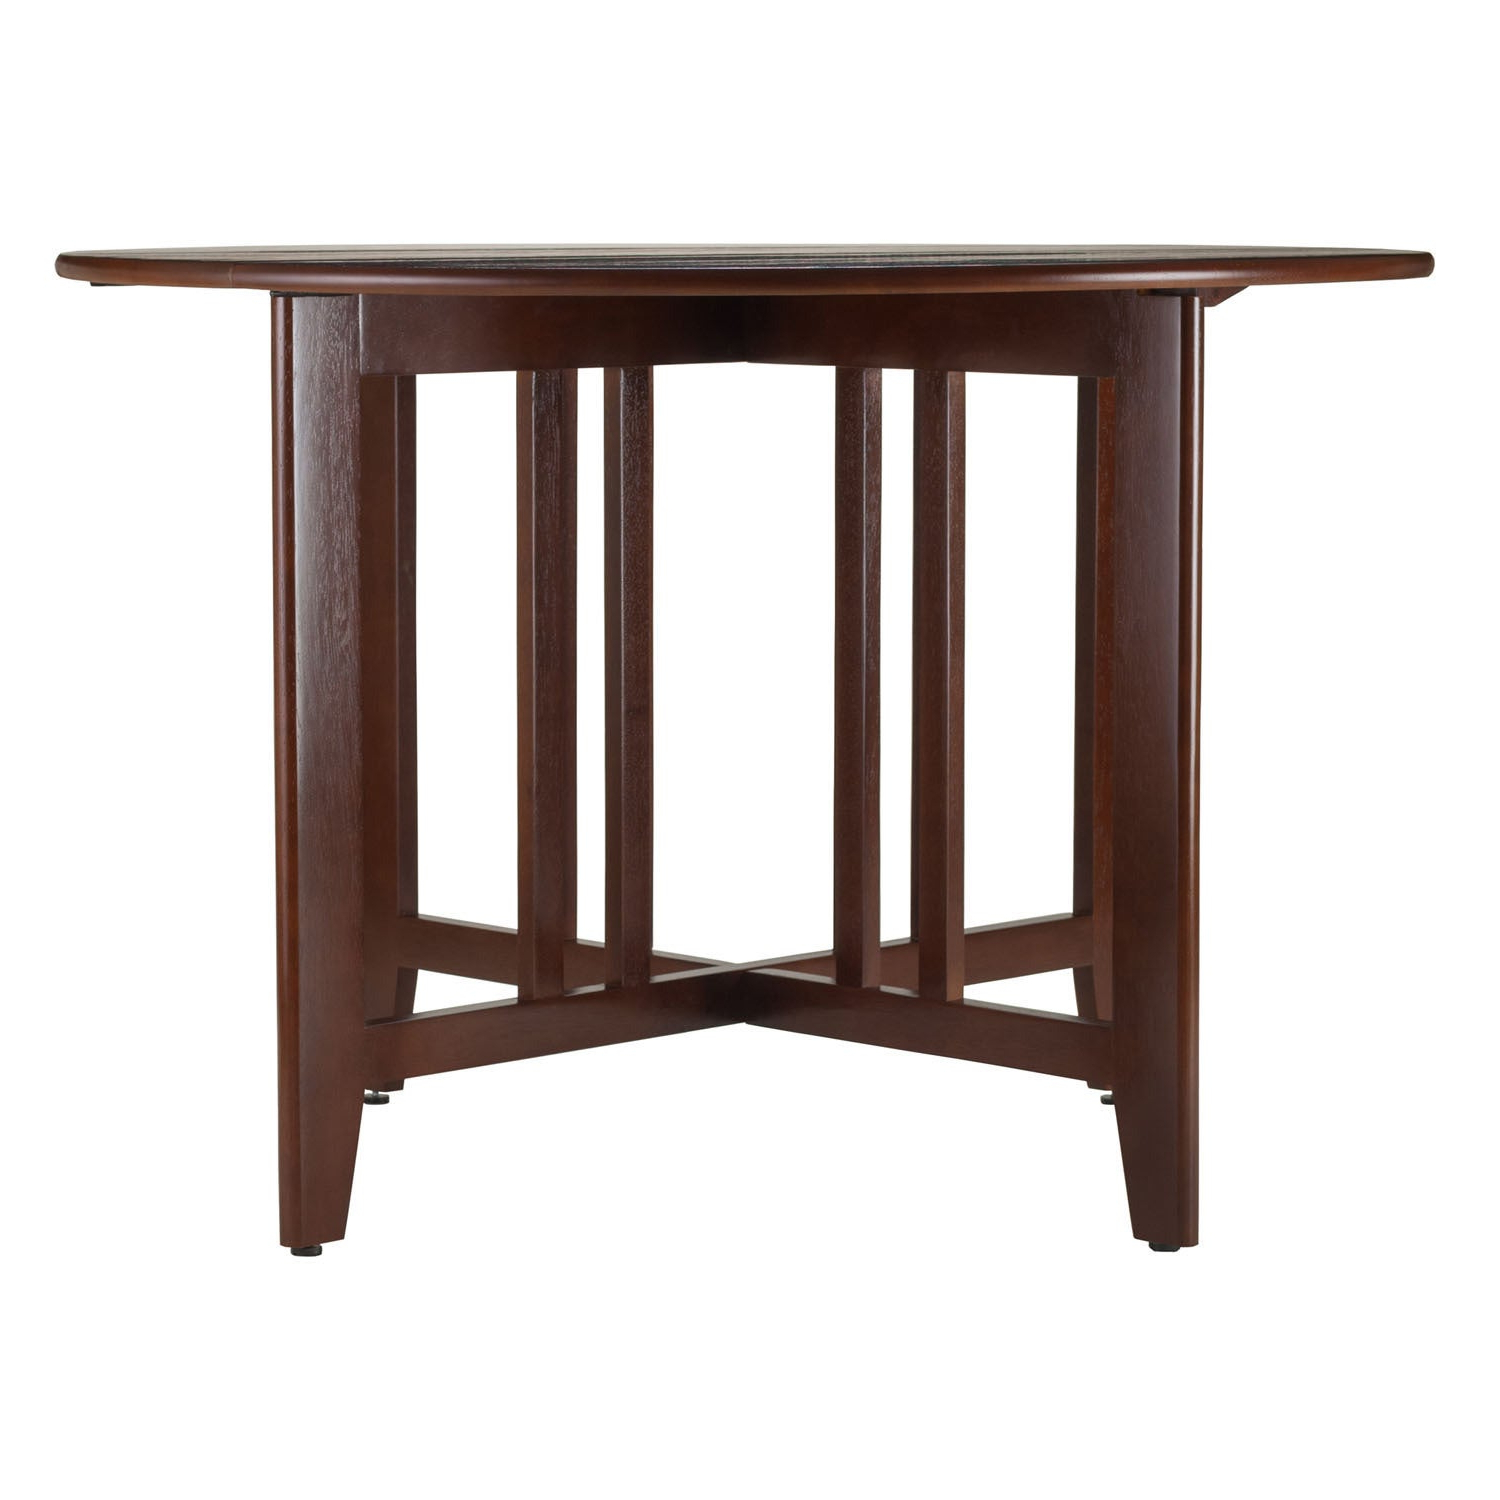 "Recent Alamo Double Drop Leaf Round 42"" Table Mission – N/a With Alamo Transitional 4 Seating Double Drop Leaf Round Casual Dining Tables (View 2 of 19)"